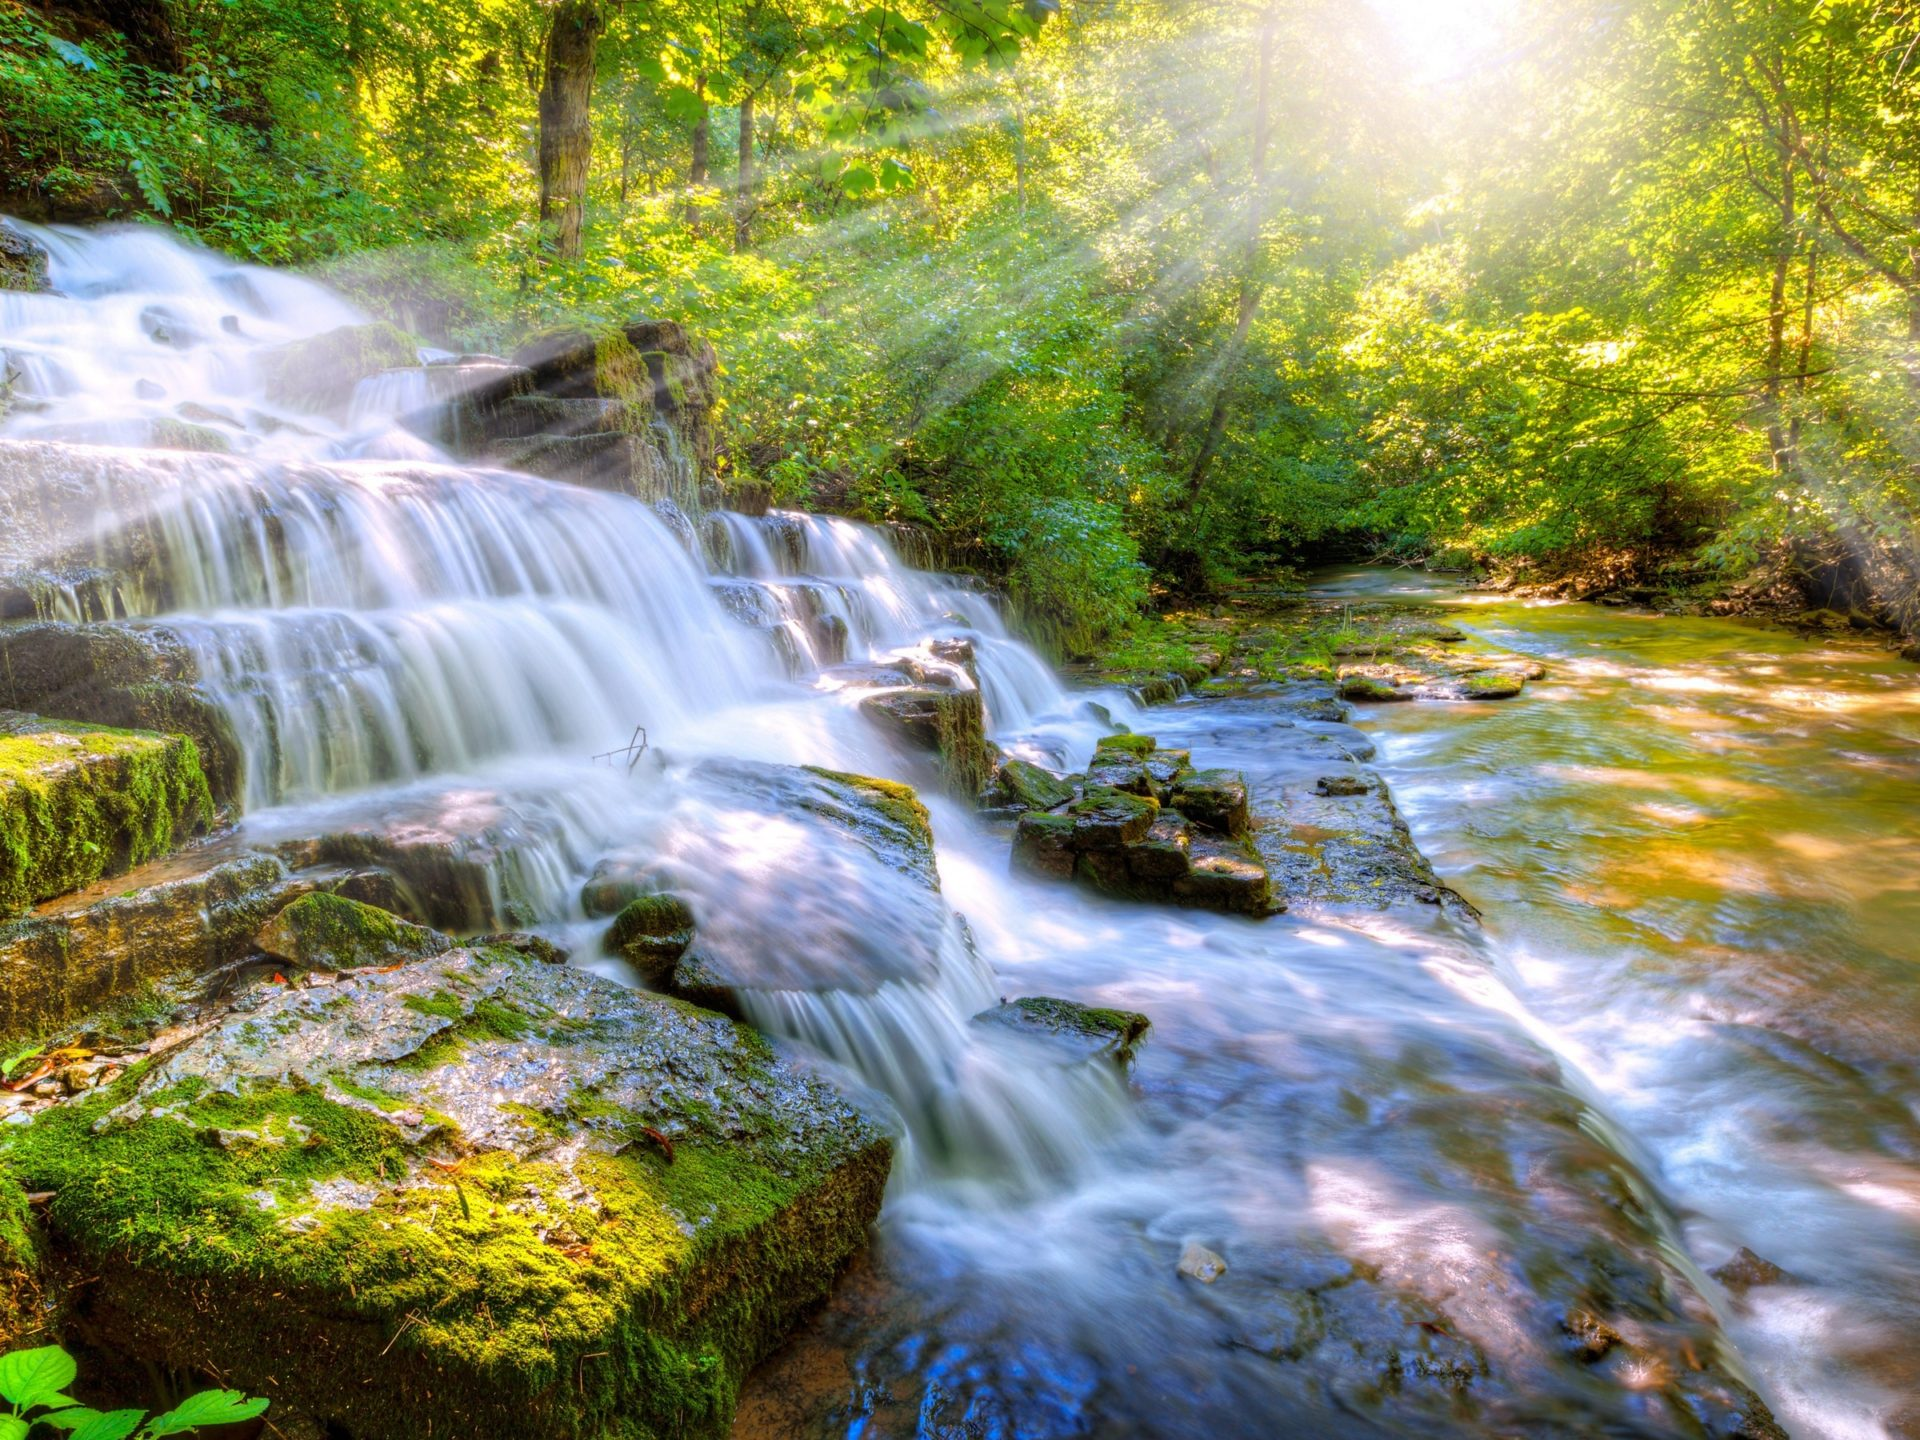 Wallpaper Of Water Fall Cascade Waterfall River Stones With Moss Green Sunlight